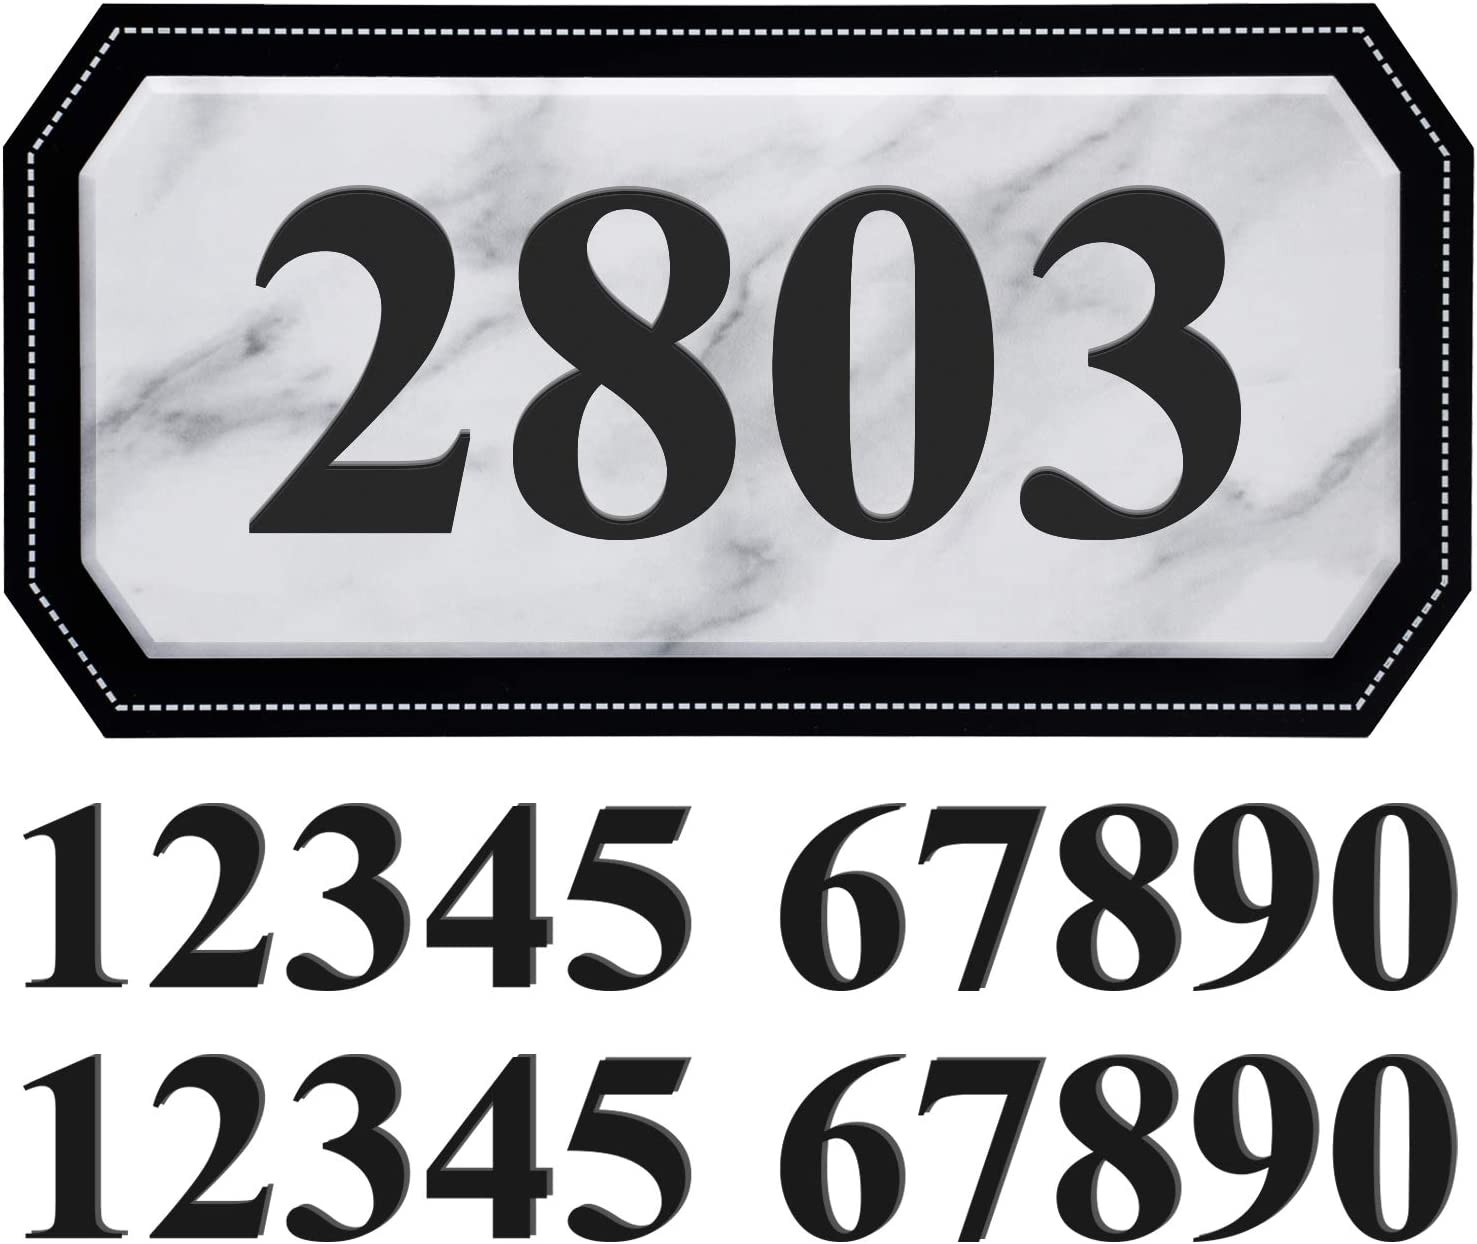 House Address Plaques Mailbox Number Personalized Address Signs for House Home Hotel Office Garden Decorative Wall Plaque (Marble)